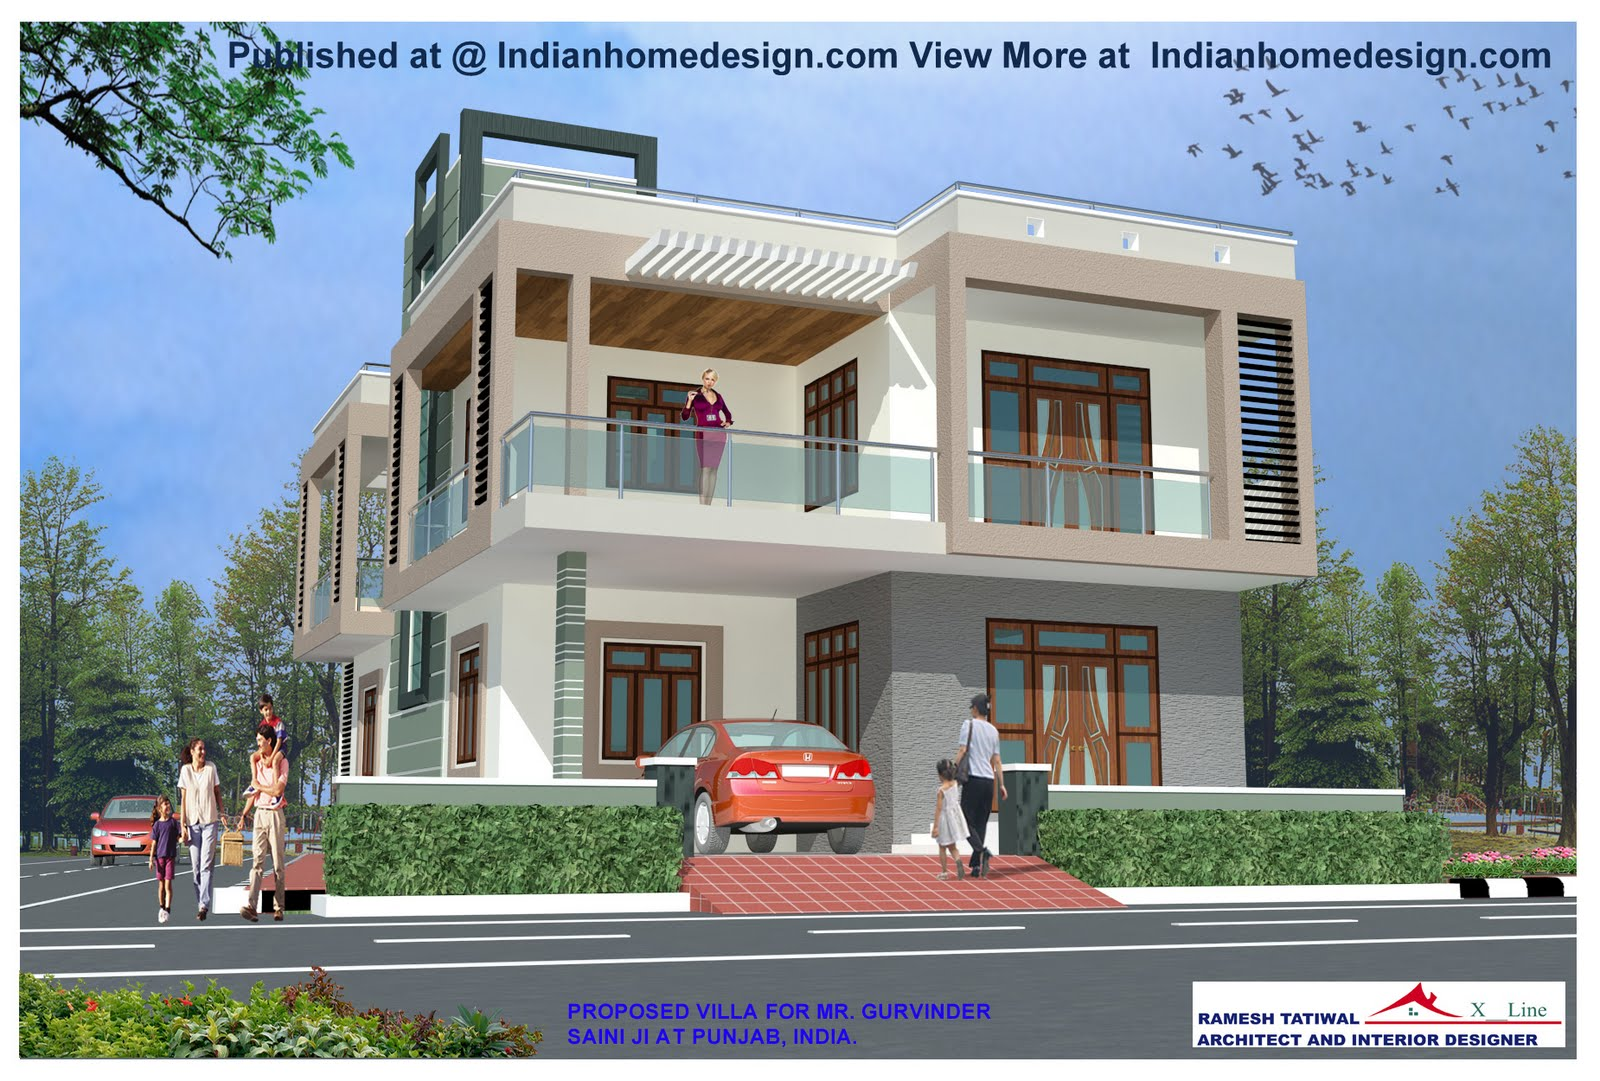 Indian house design front view joy studio design gallery Indian house front design photo